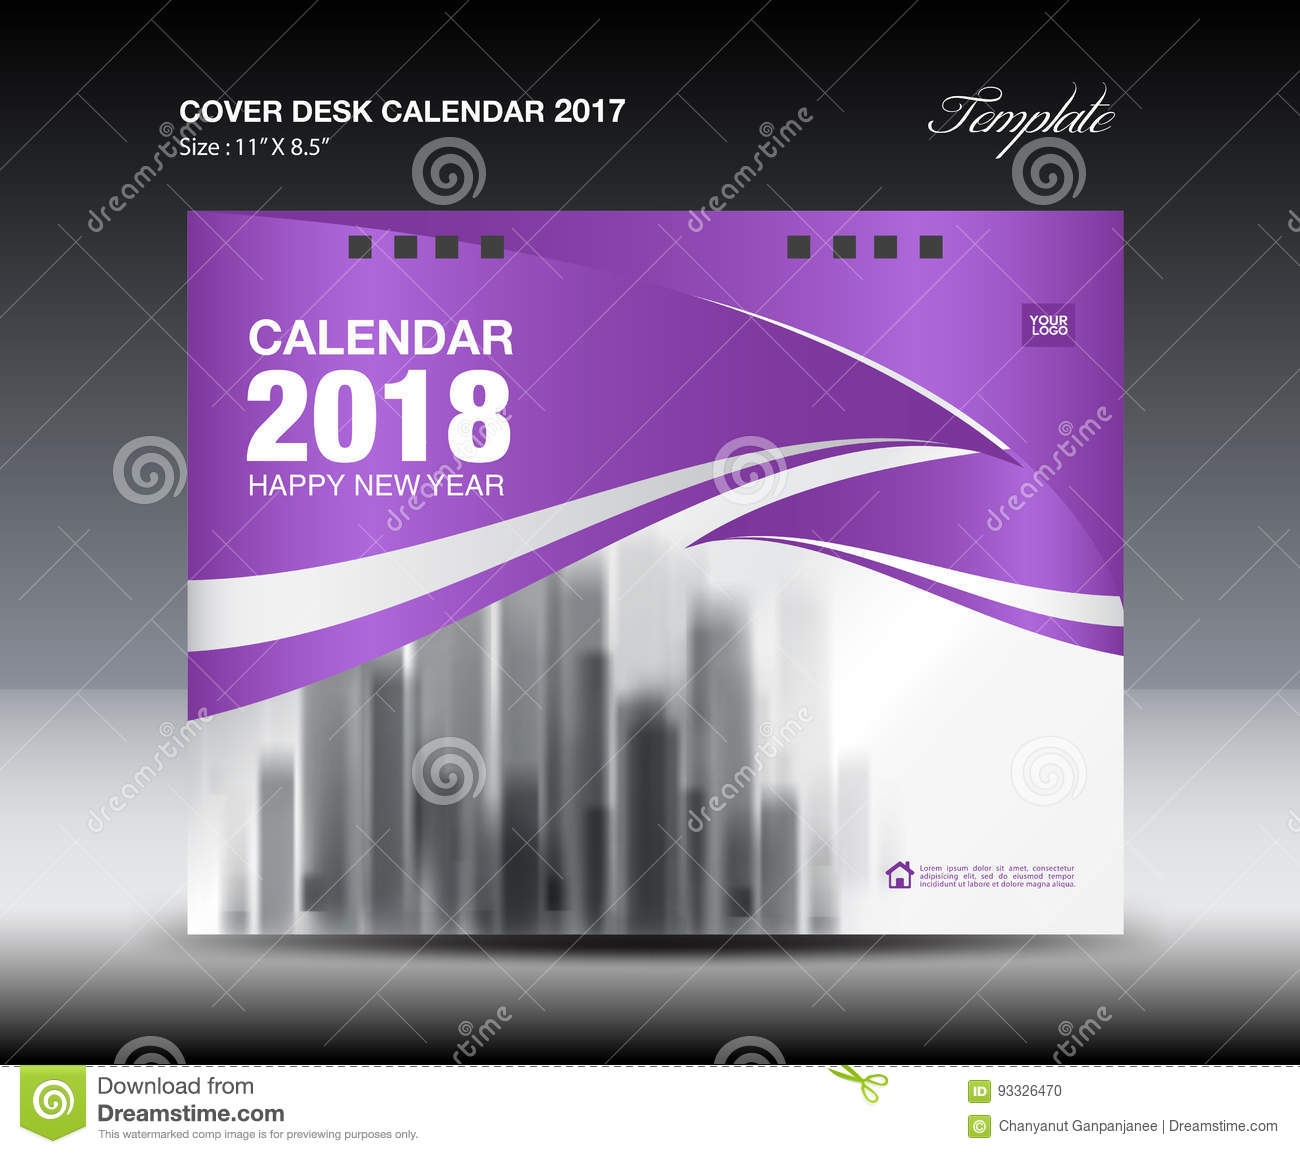 Calendar Cover 2018 : Purple cover desk calendar design flyer template